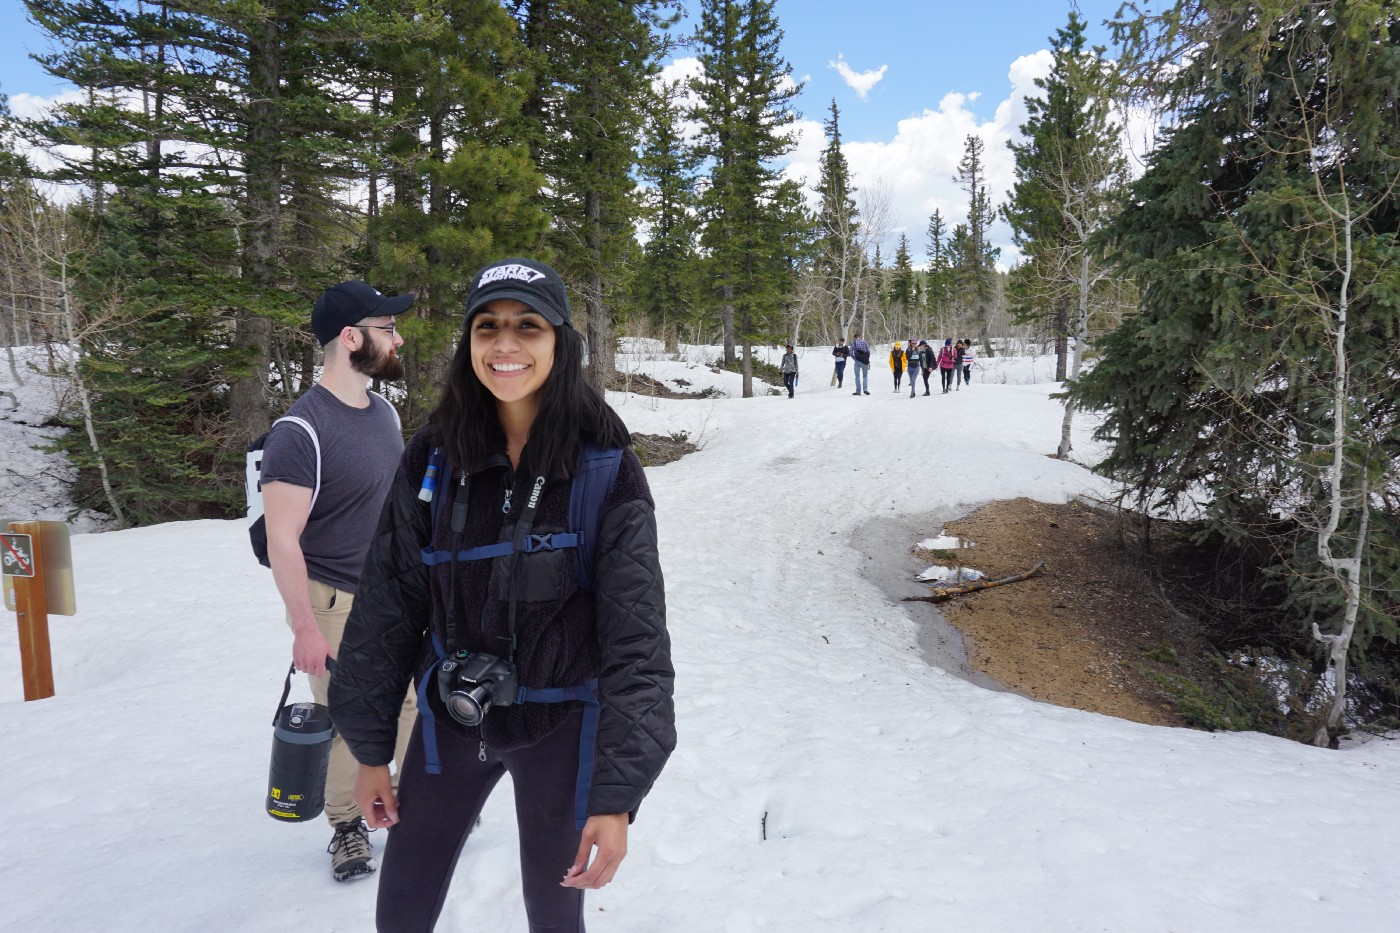 Lory heads a hike on a snowy trail featuring a group of people behind her and a guy next to her